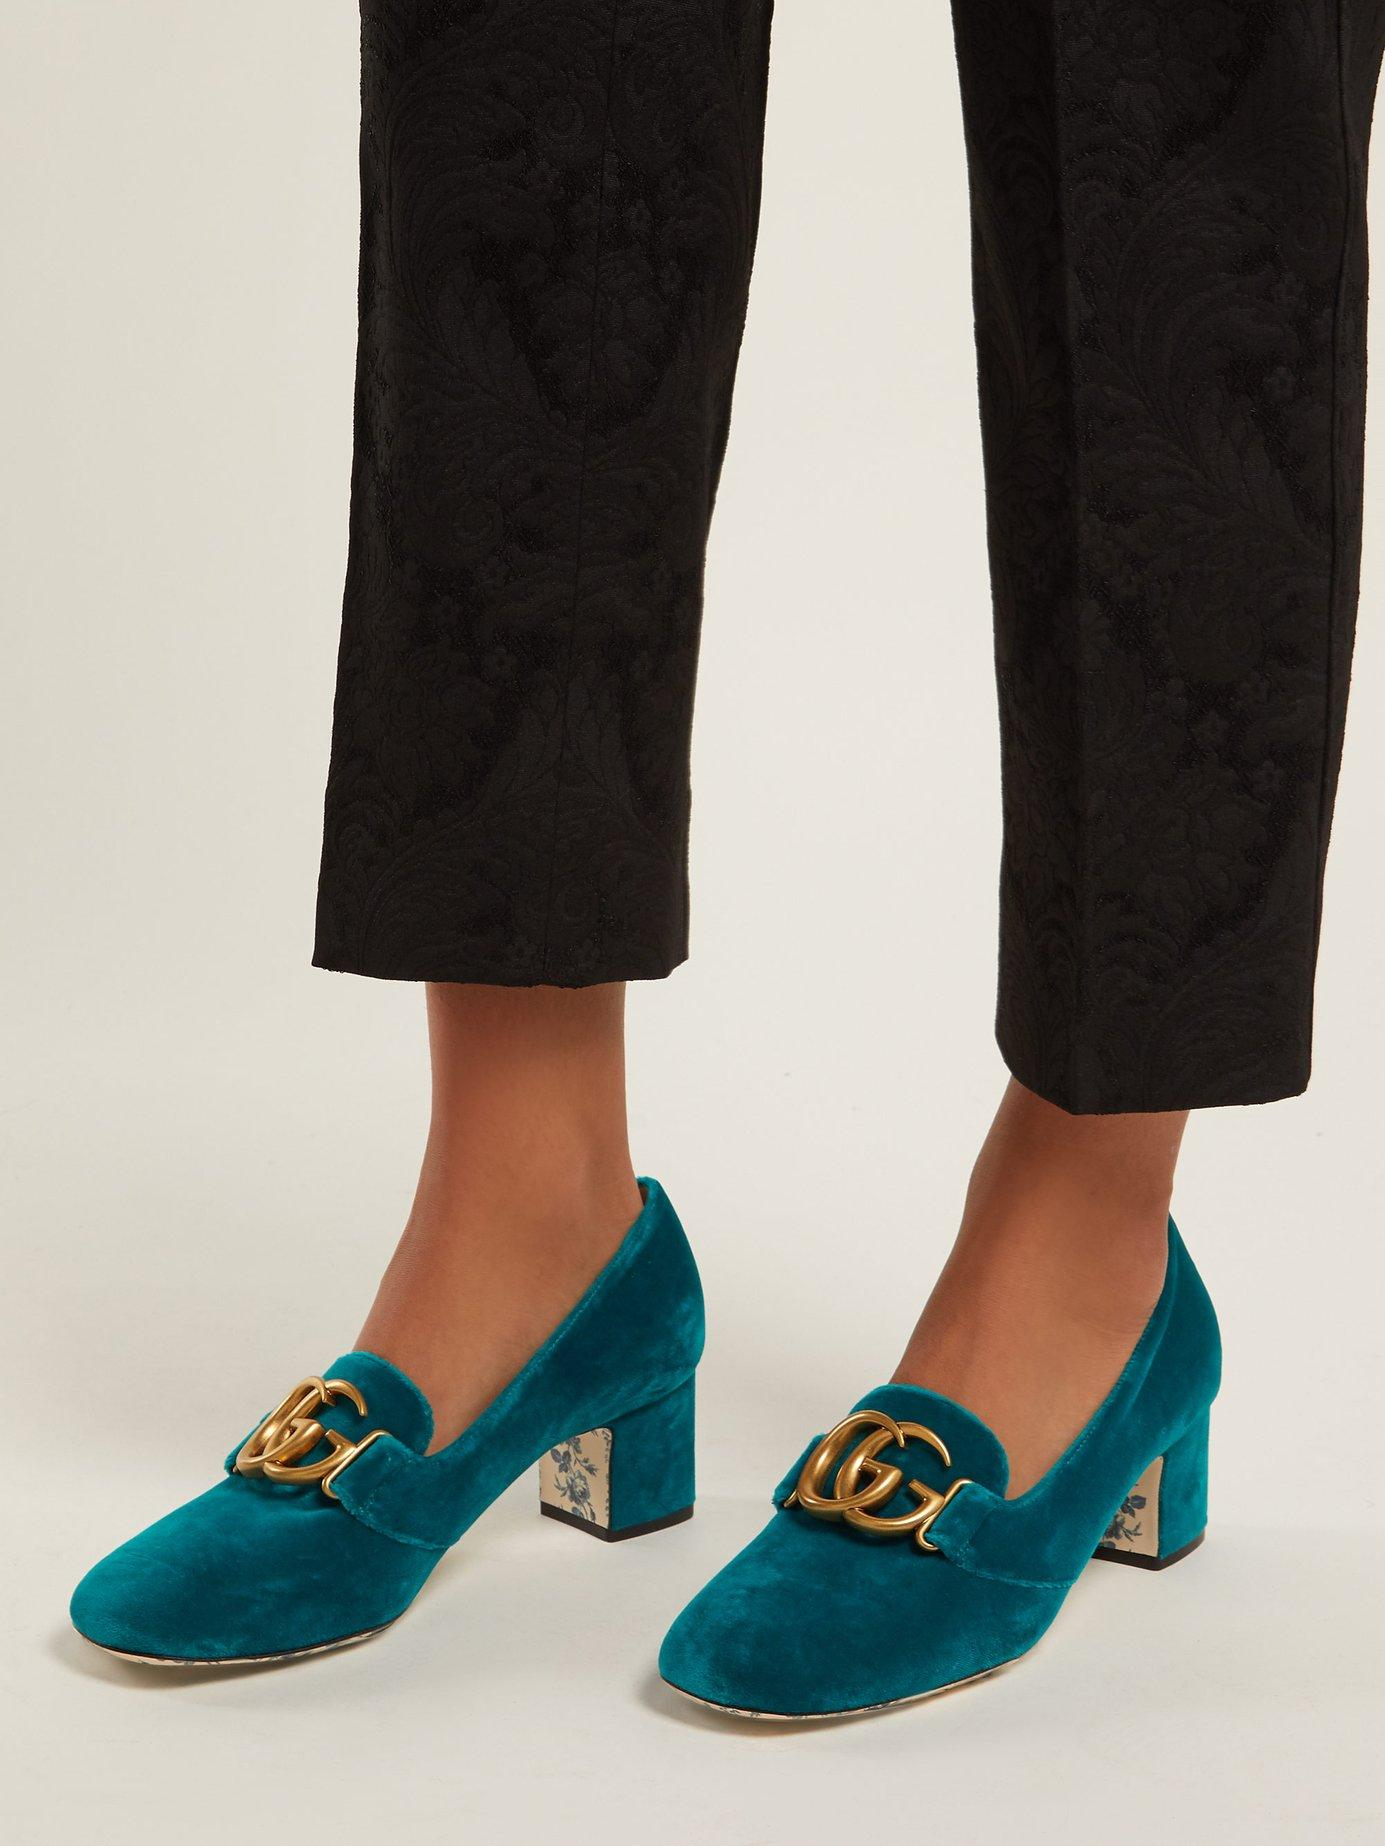 3057b313a1 Gucci - Blue Gg Velvet Pumps - Lyst. View fullscreen